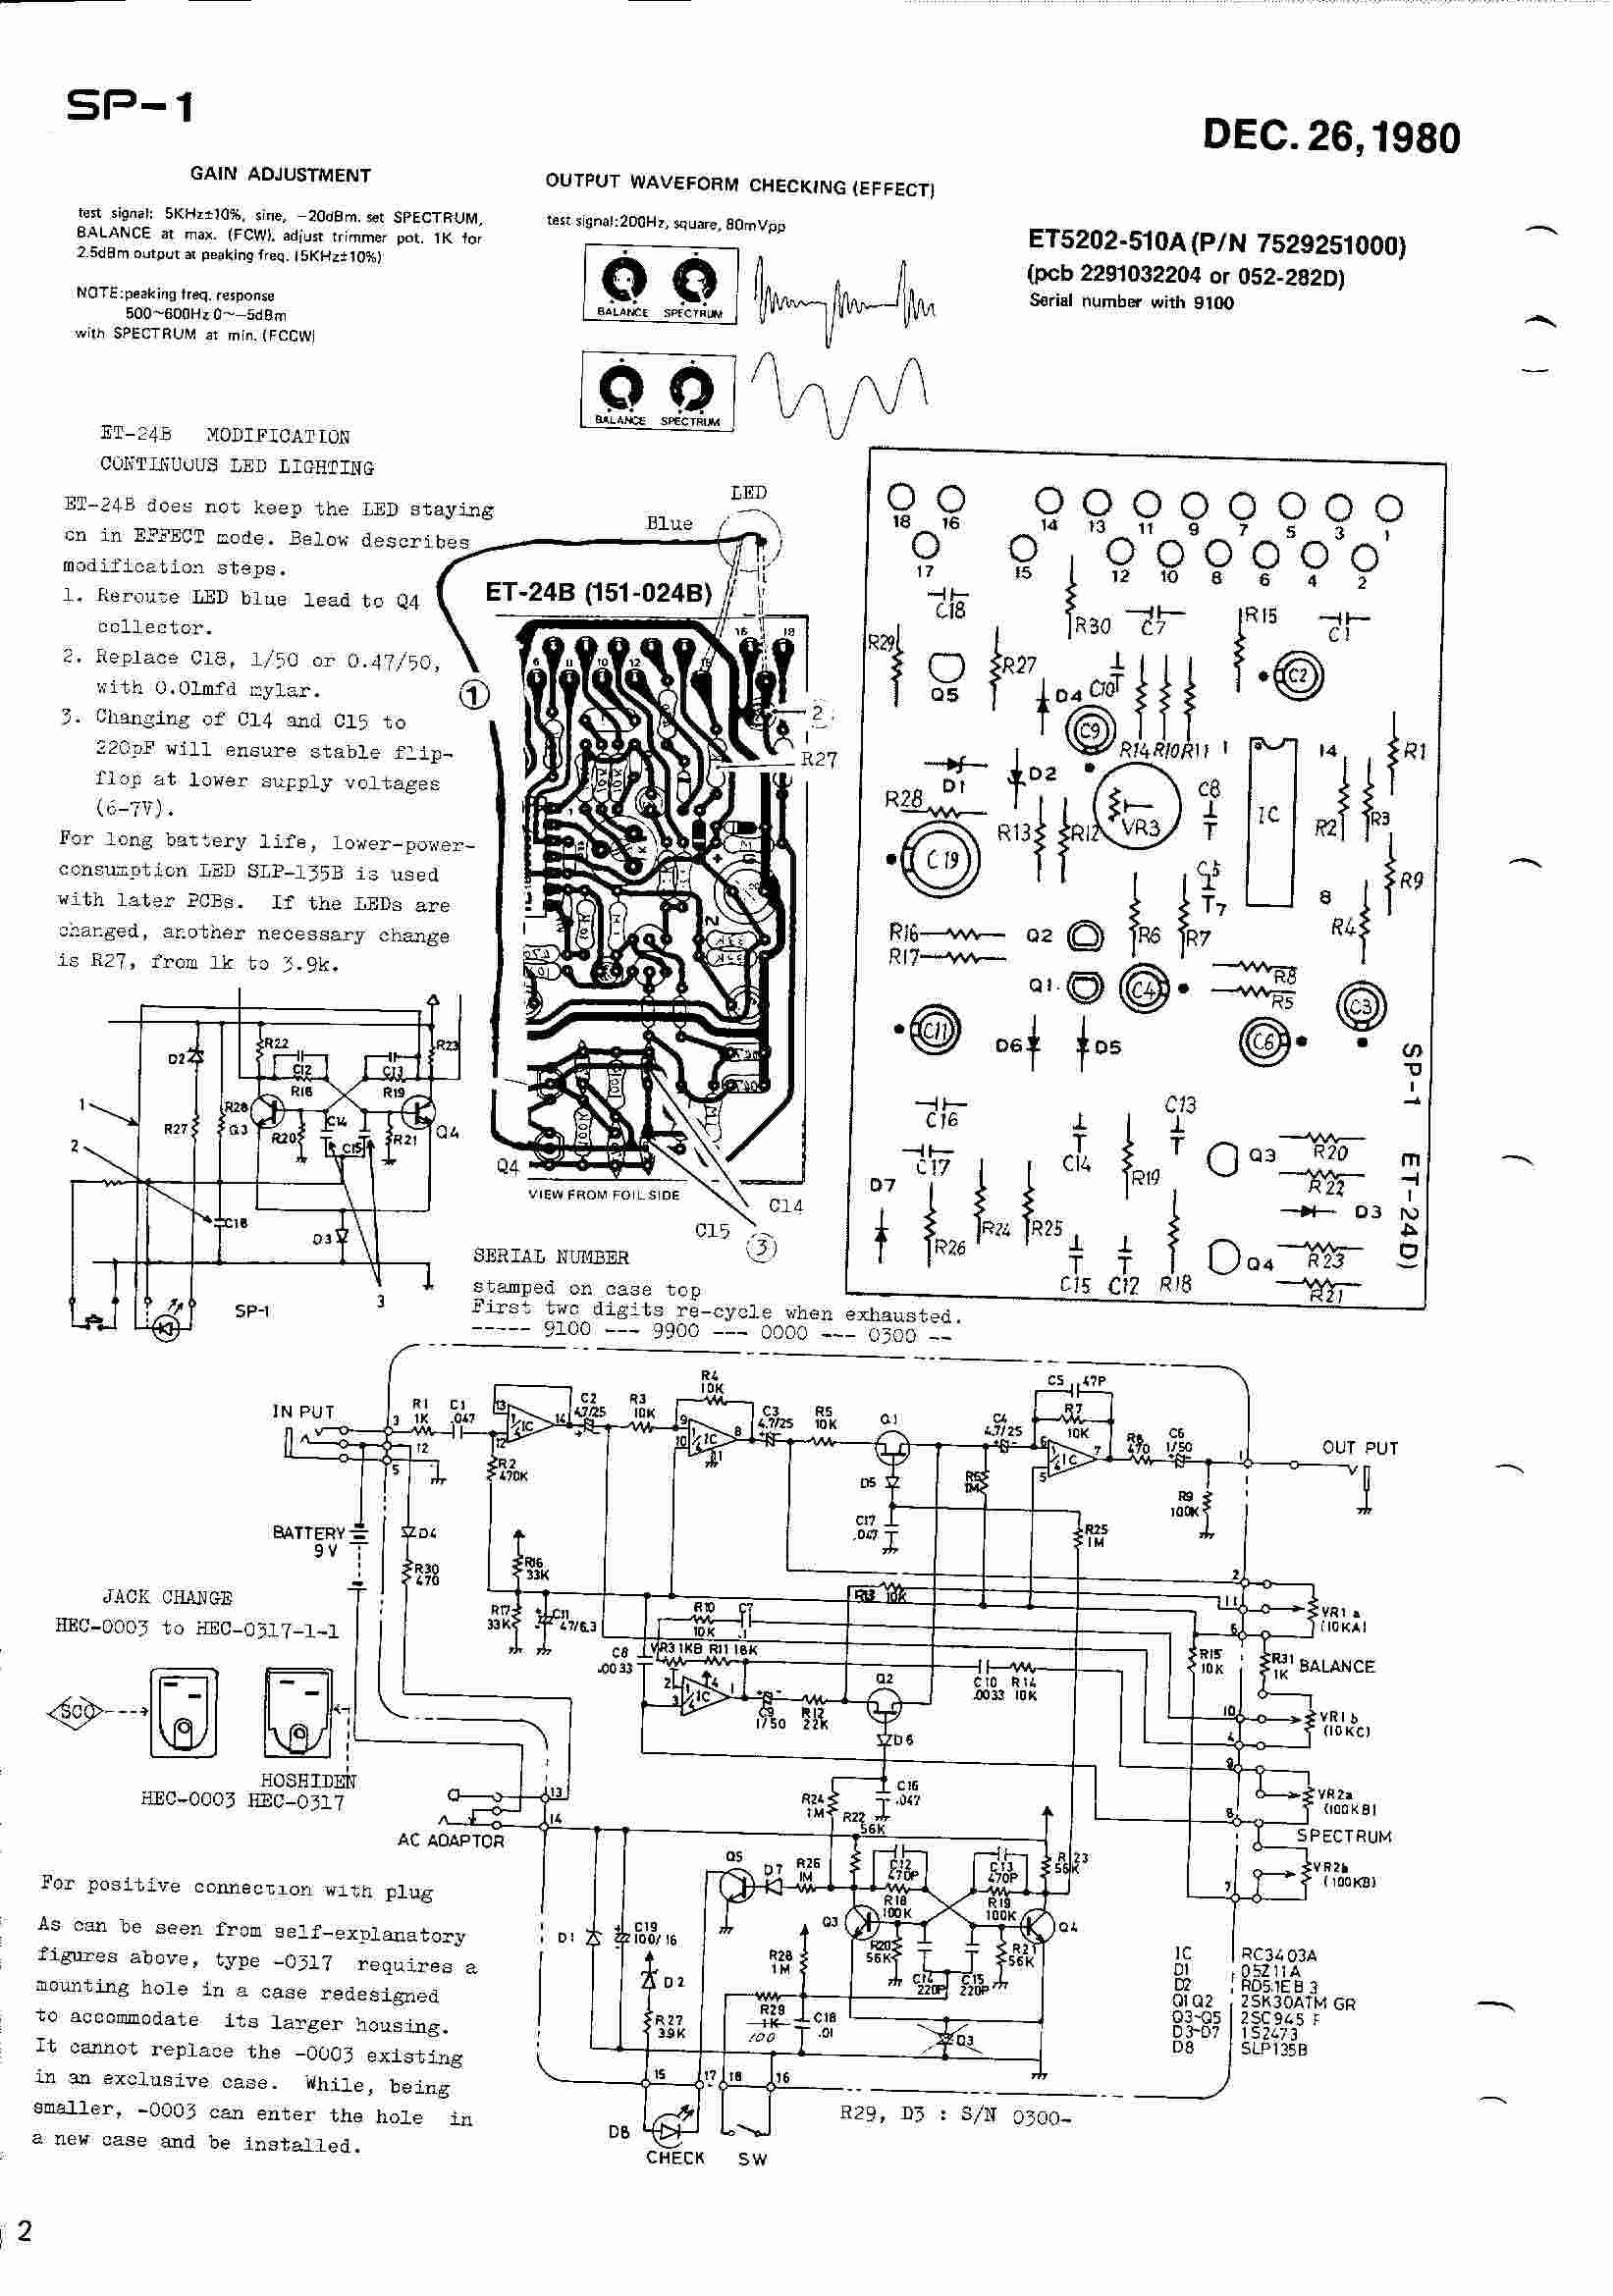 Schematics Electroconducive Wah Pedal Wiring Diagram Boss Sp 1